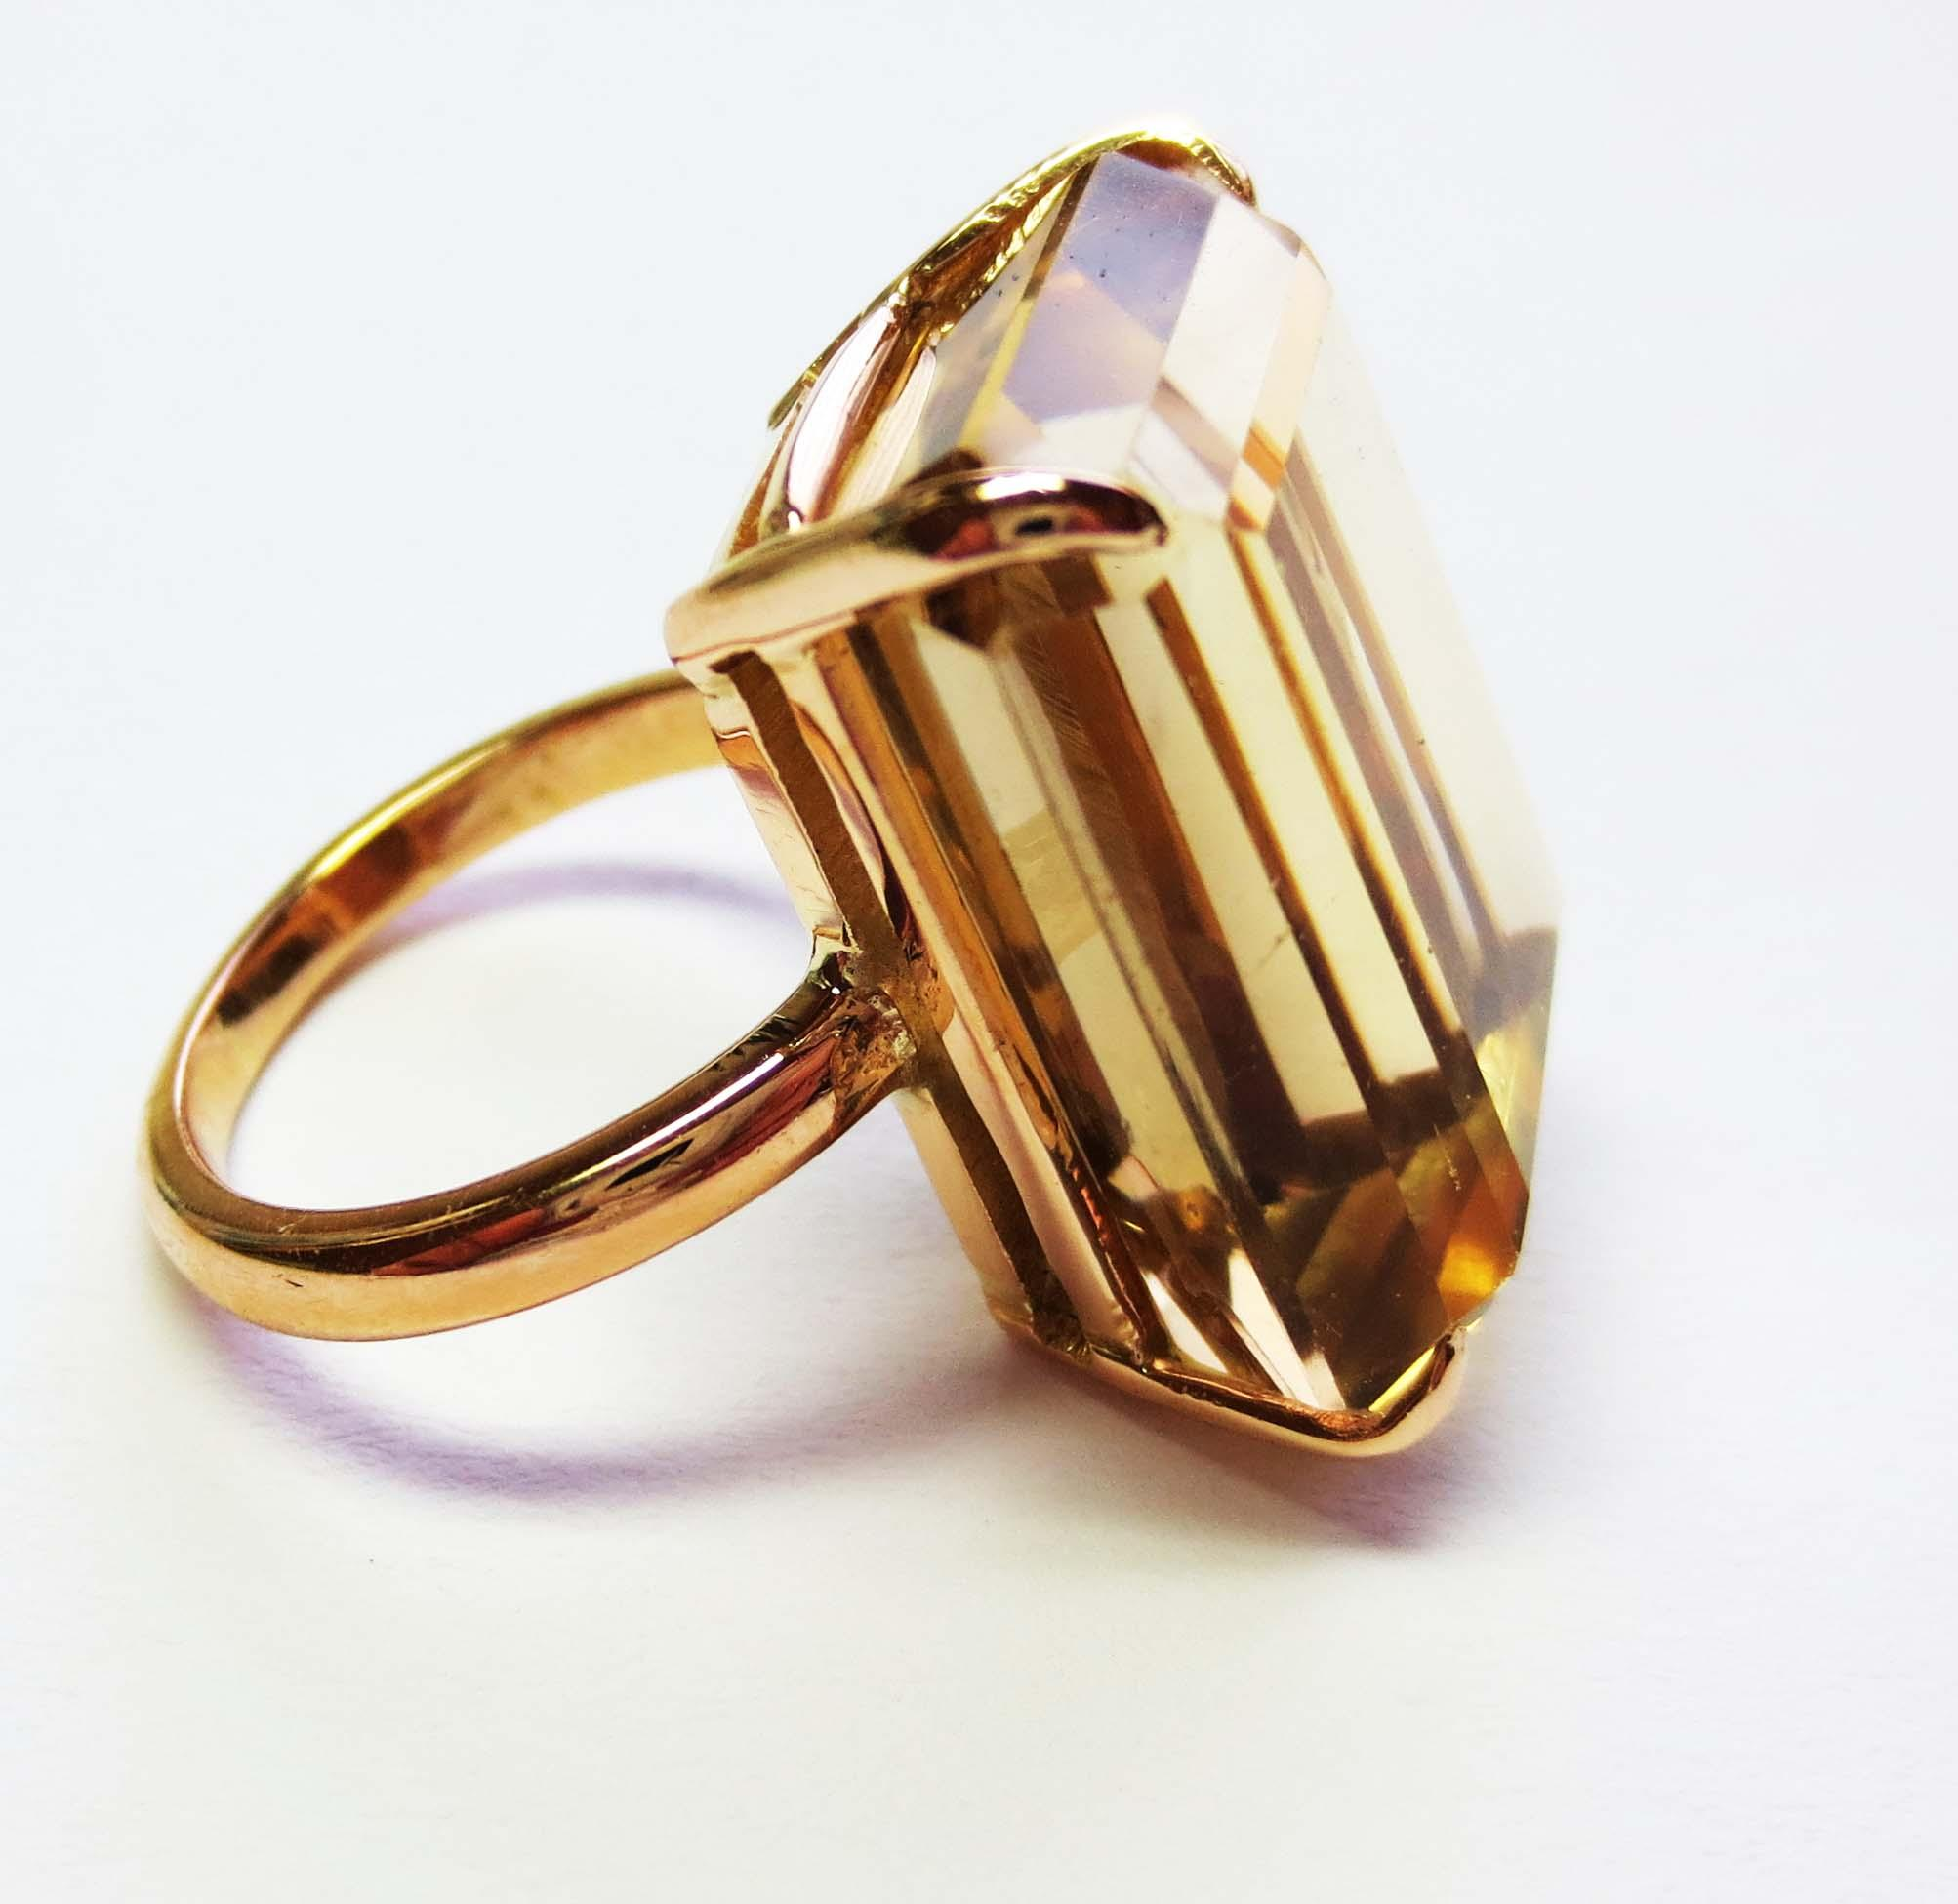 Emerald Cut Smoky Topaz Ring in 14k Yellow Gold circa late